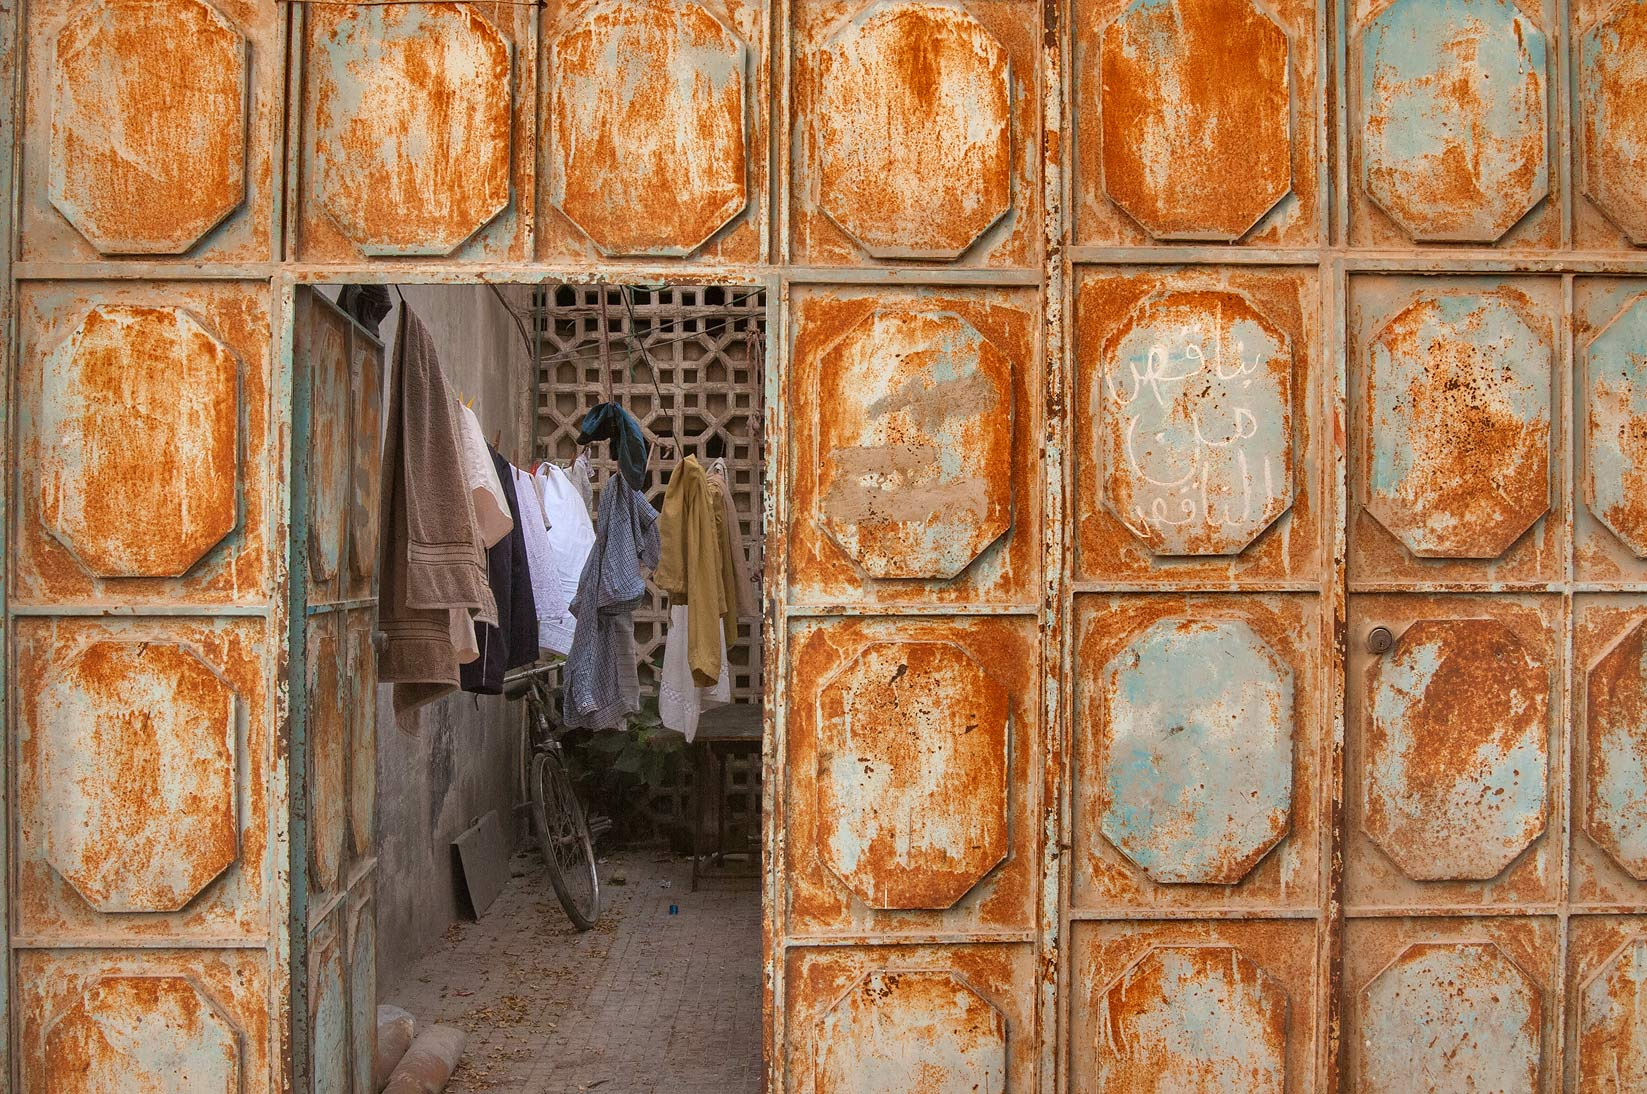 Rusty doorway of a shared apartment at Sikkat Ibn Al Rabei, Najma area. Doha, Qatar